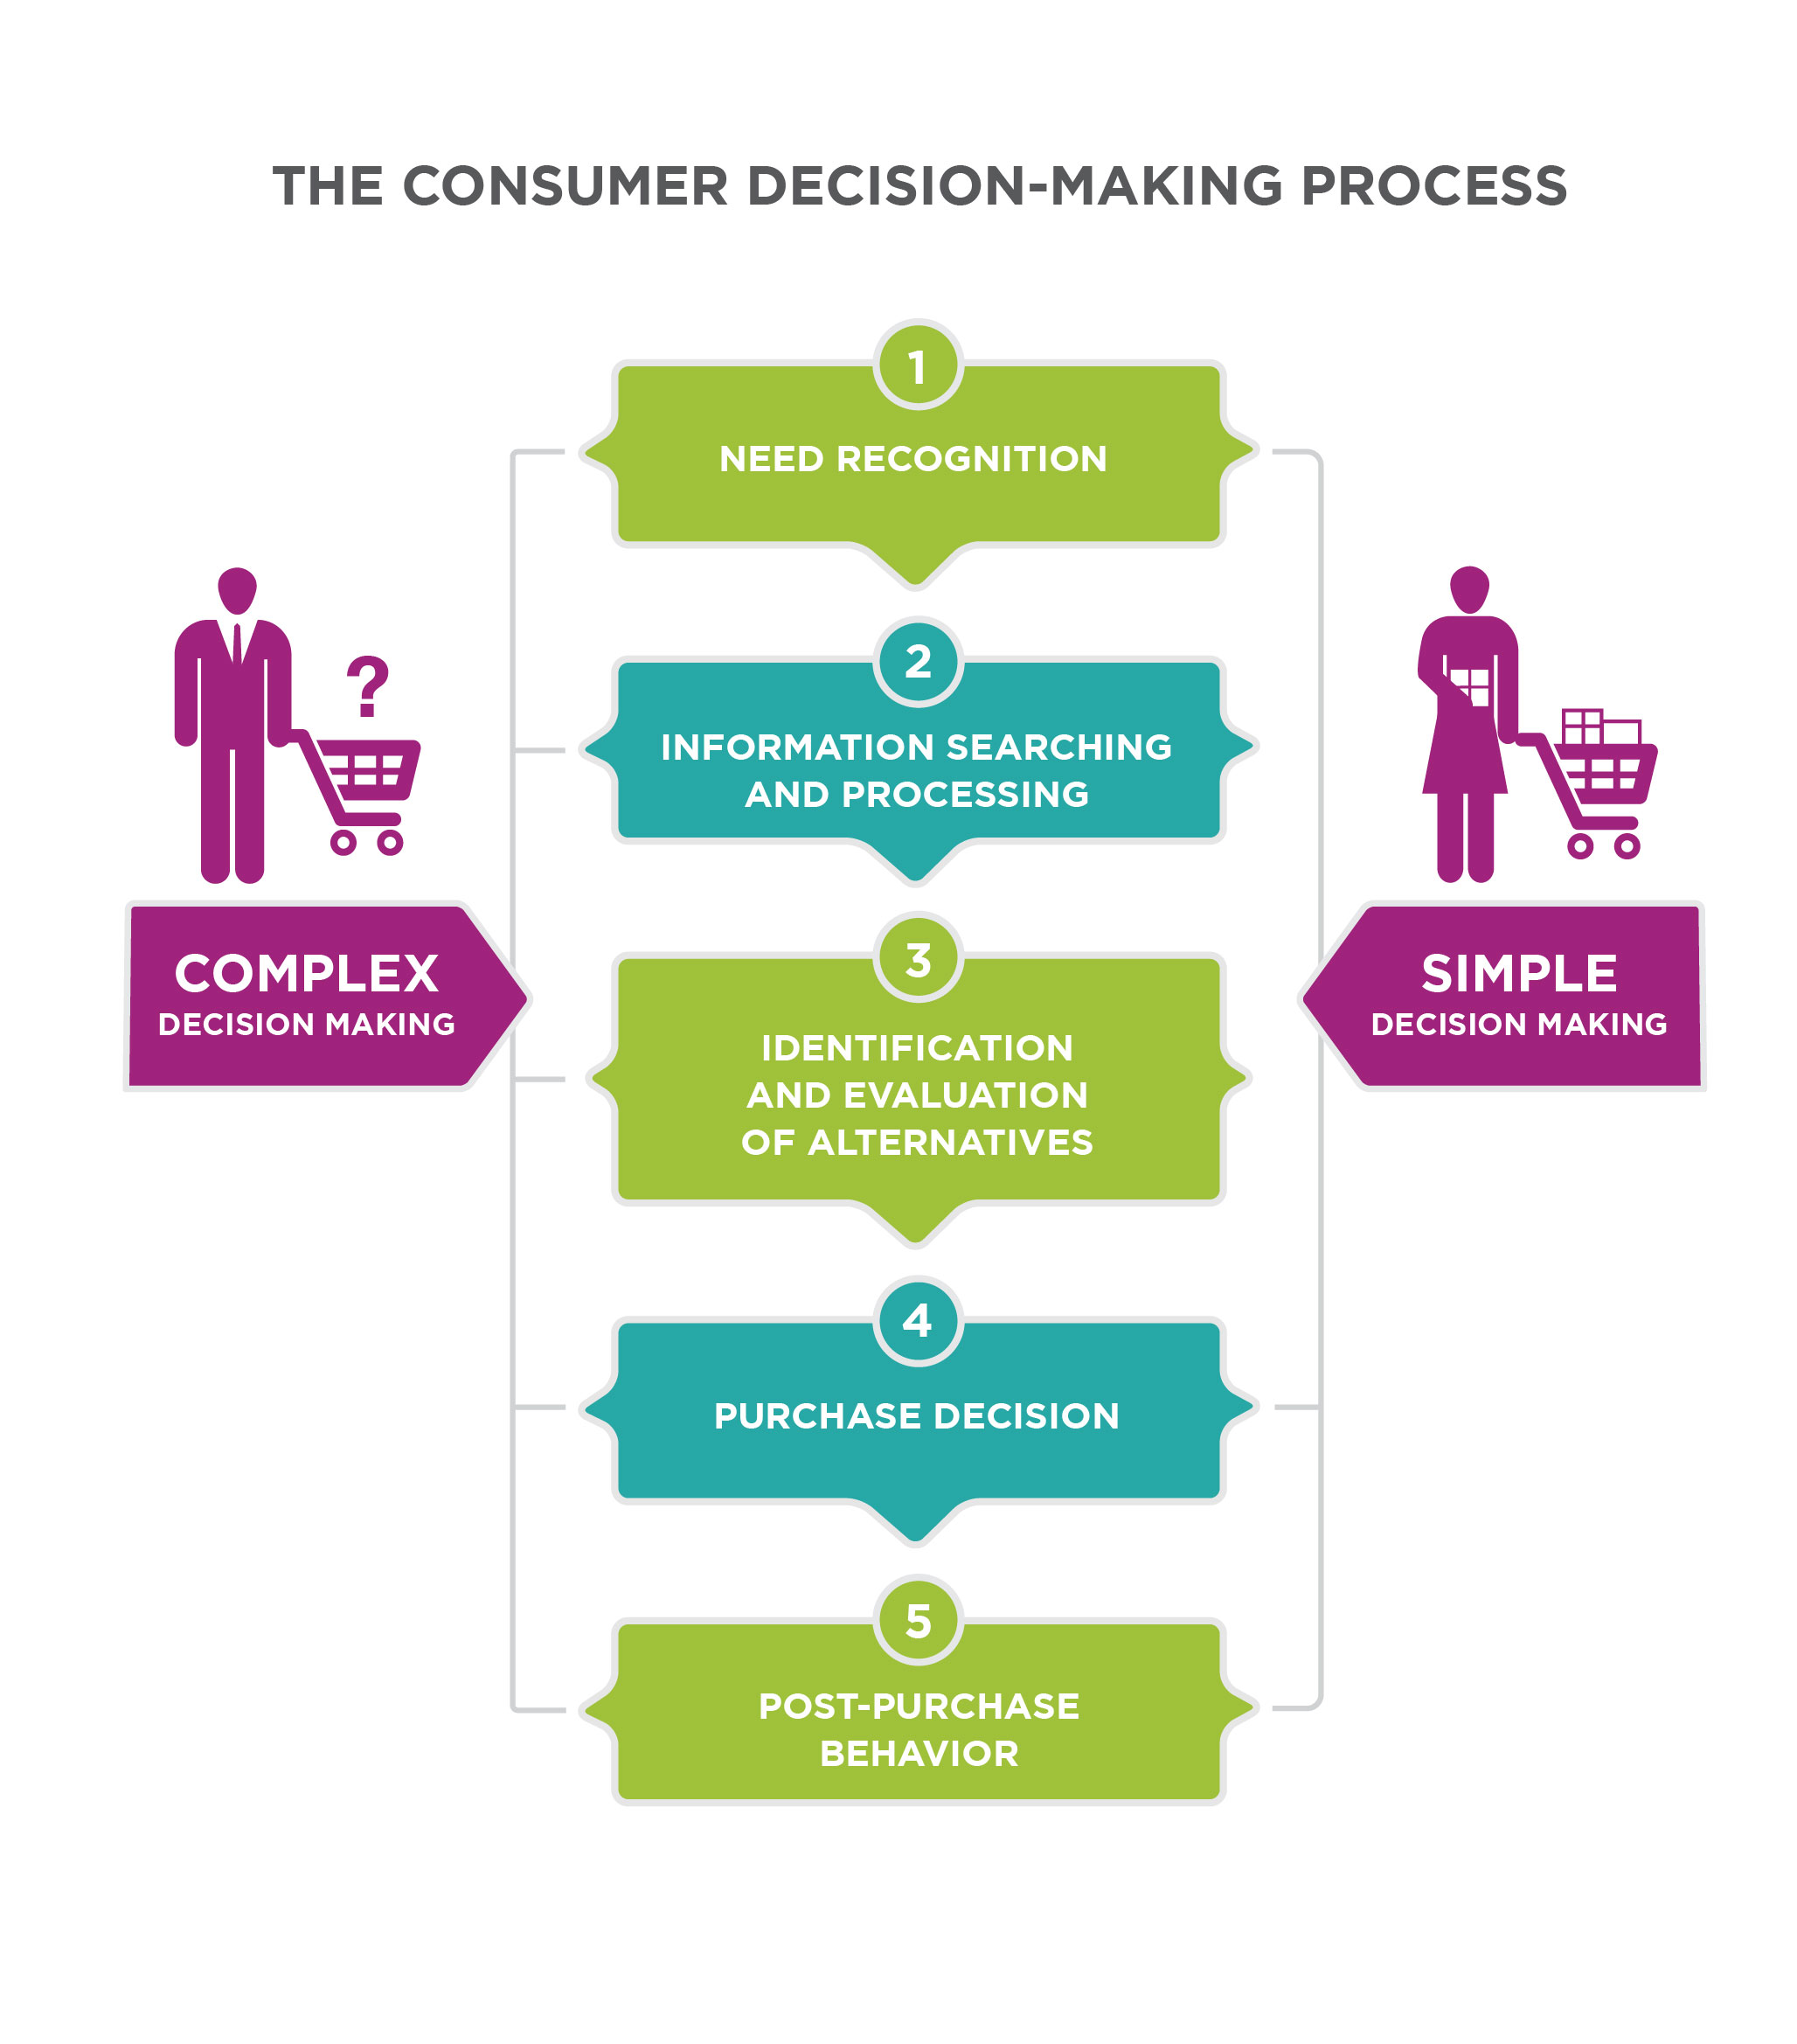 customer purchase decision process Marketing theories – explaining the consumer decision making process marketing theories – explaining the consumer decision making process visit our marketing theories page to see more of our marketing buzzword busting blogs so the process was able to continue 4 – purchase (buying the trainers) the customer has now.